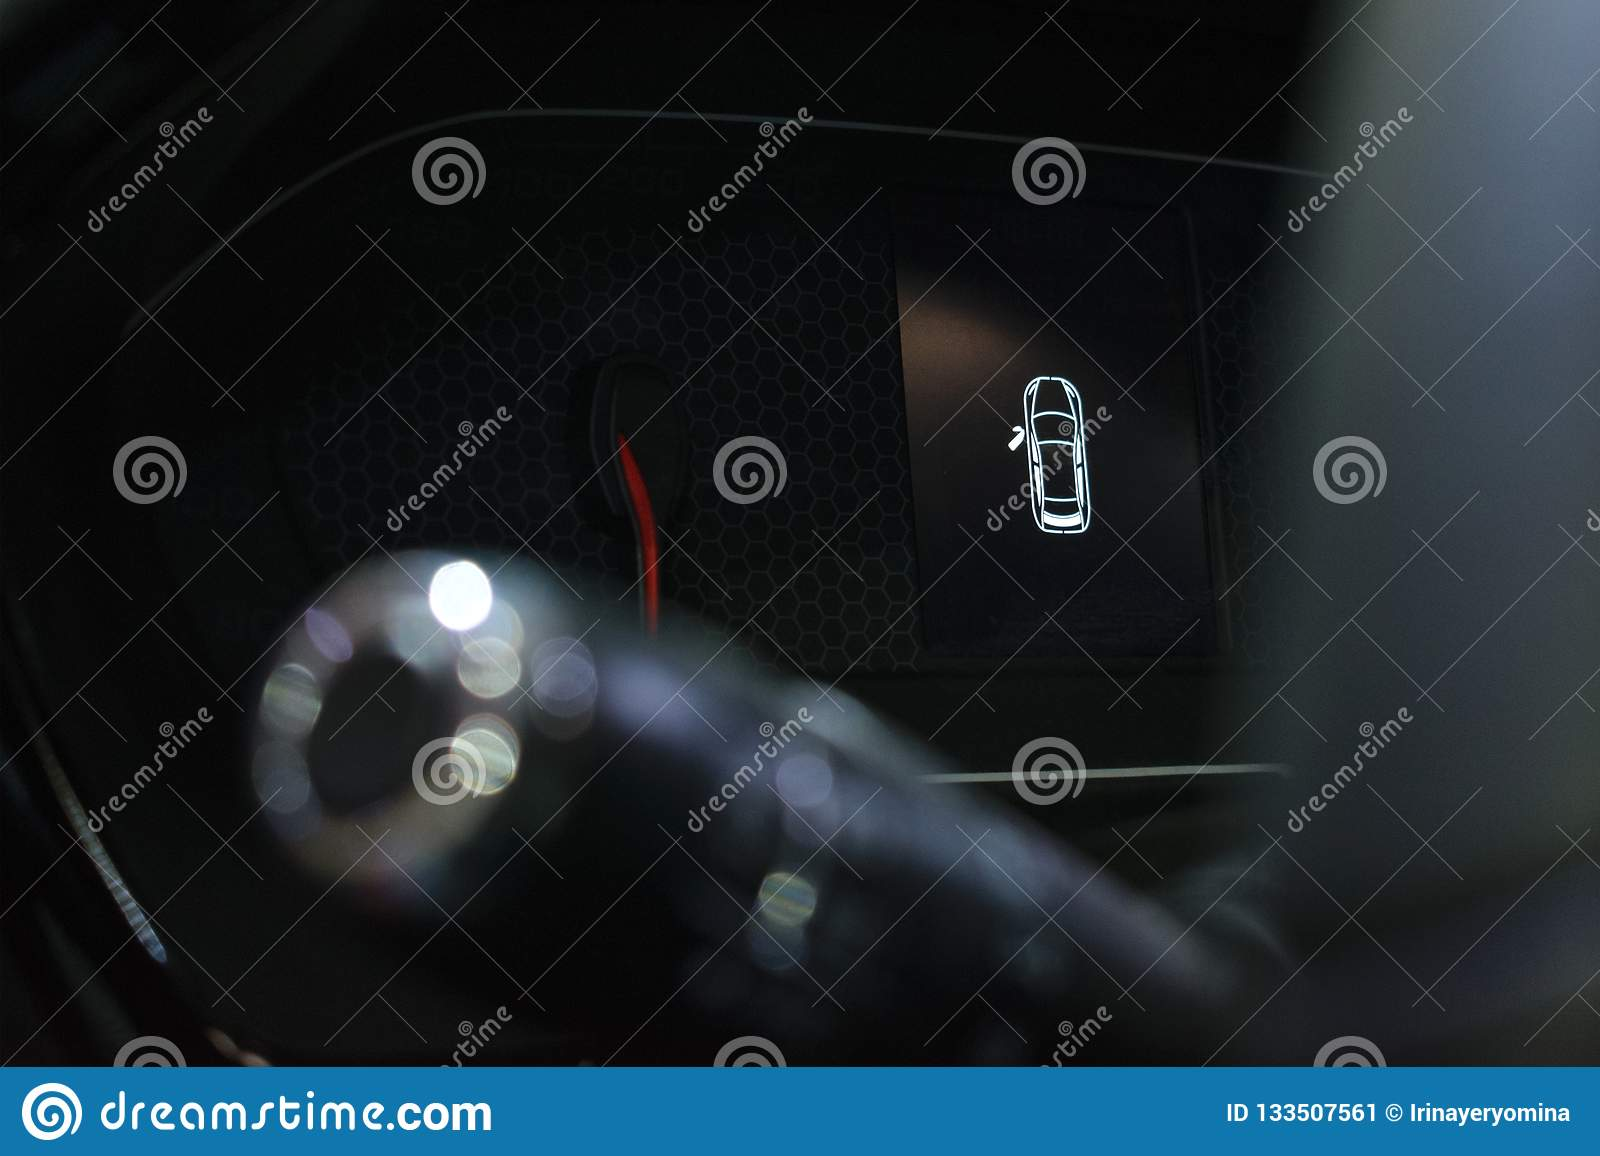 Door Open Warning Light On Car Dashboard Stock Image - Image of